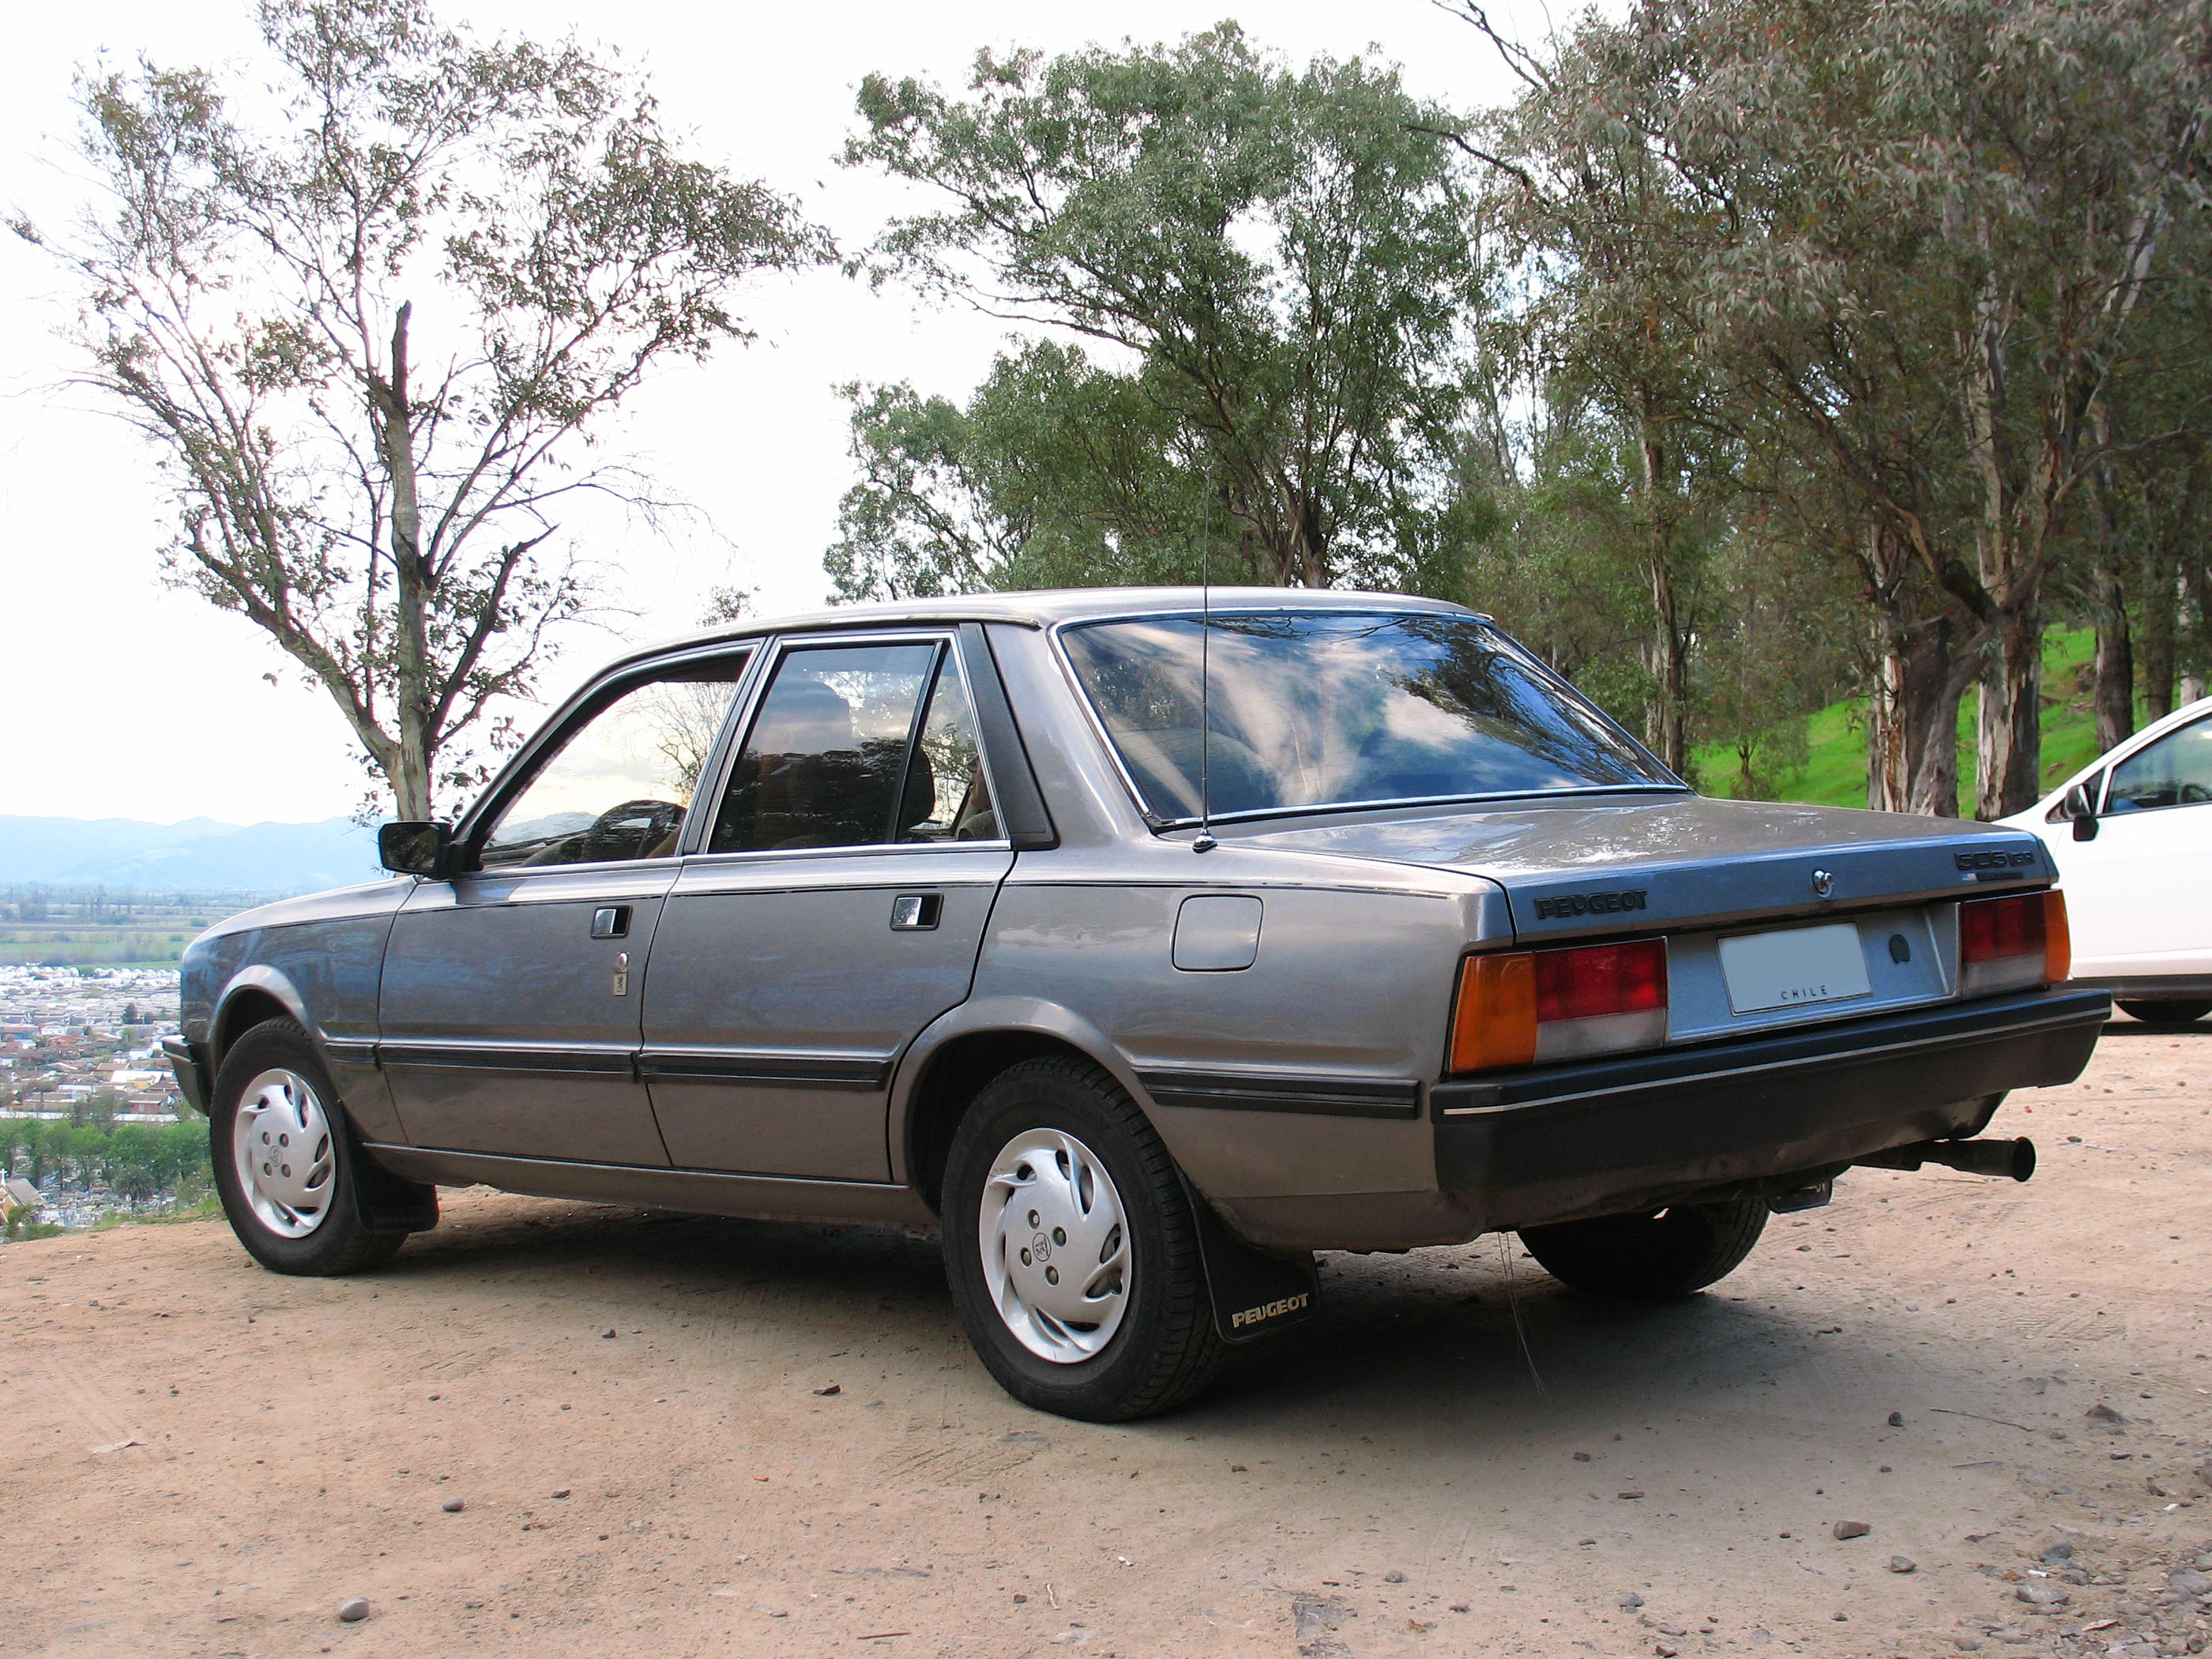 file:peugeot 505 gr 1985 (15055206599) - wikimedia commons